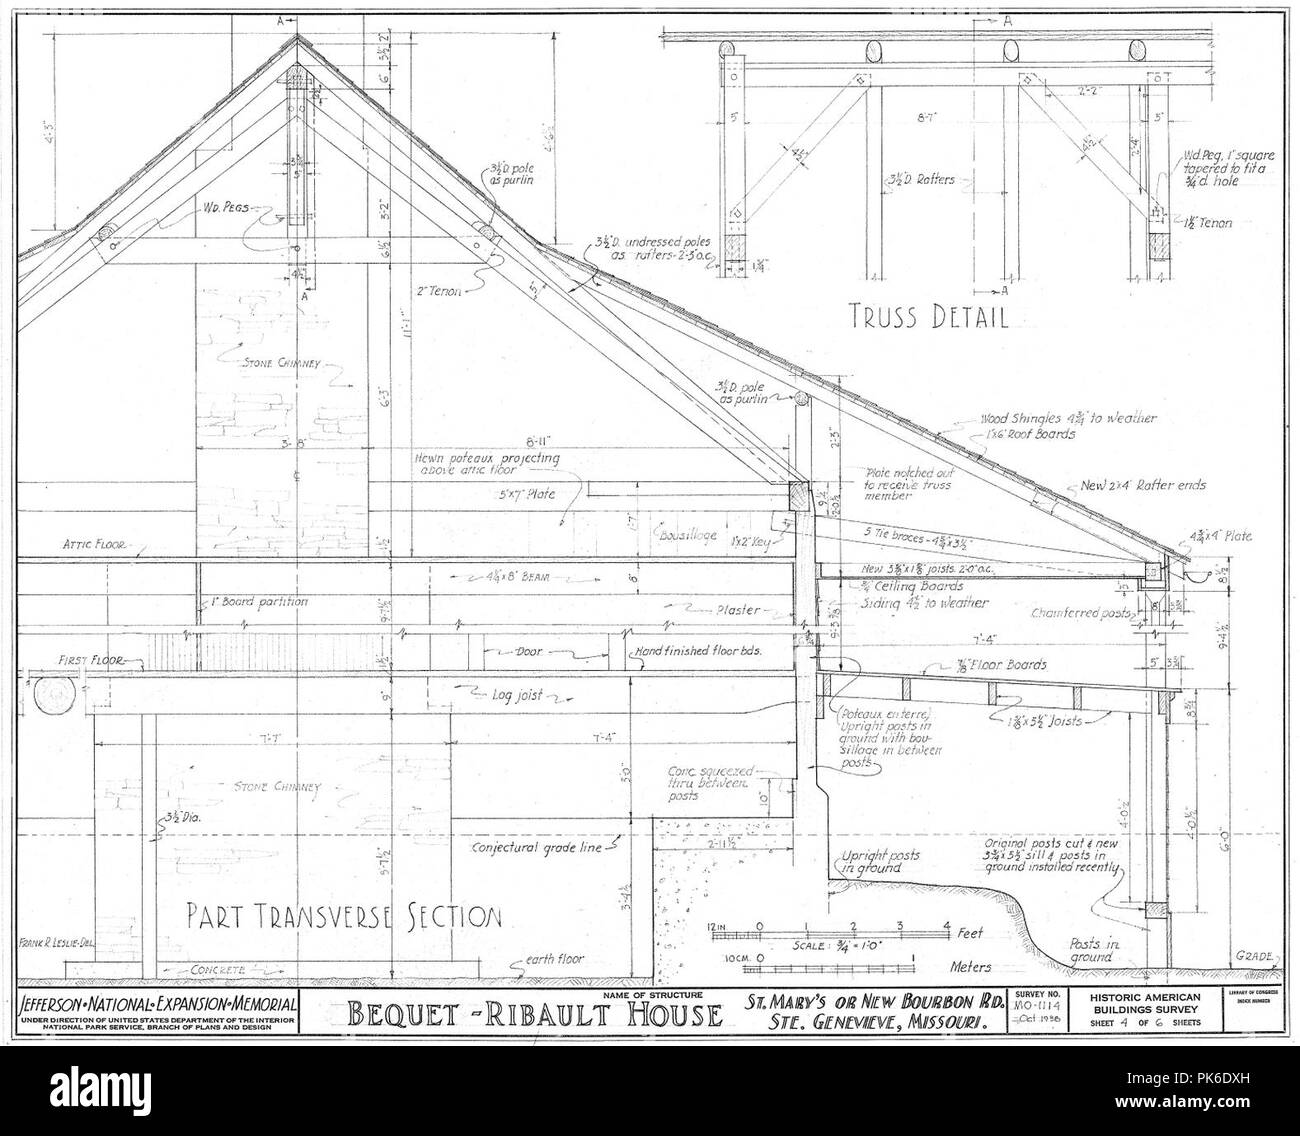 Bequet-Ribault House Transverse Section with Details--Ste Genevieve MO. - Stock Image